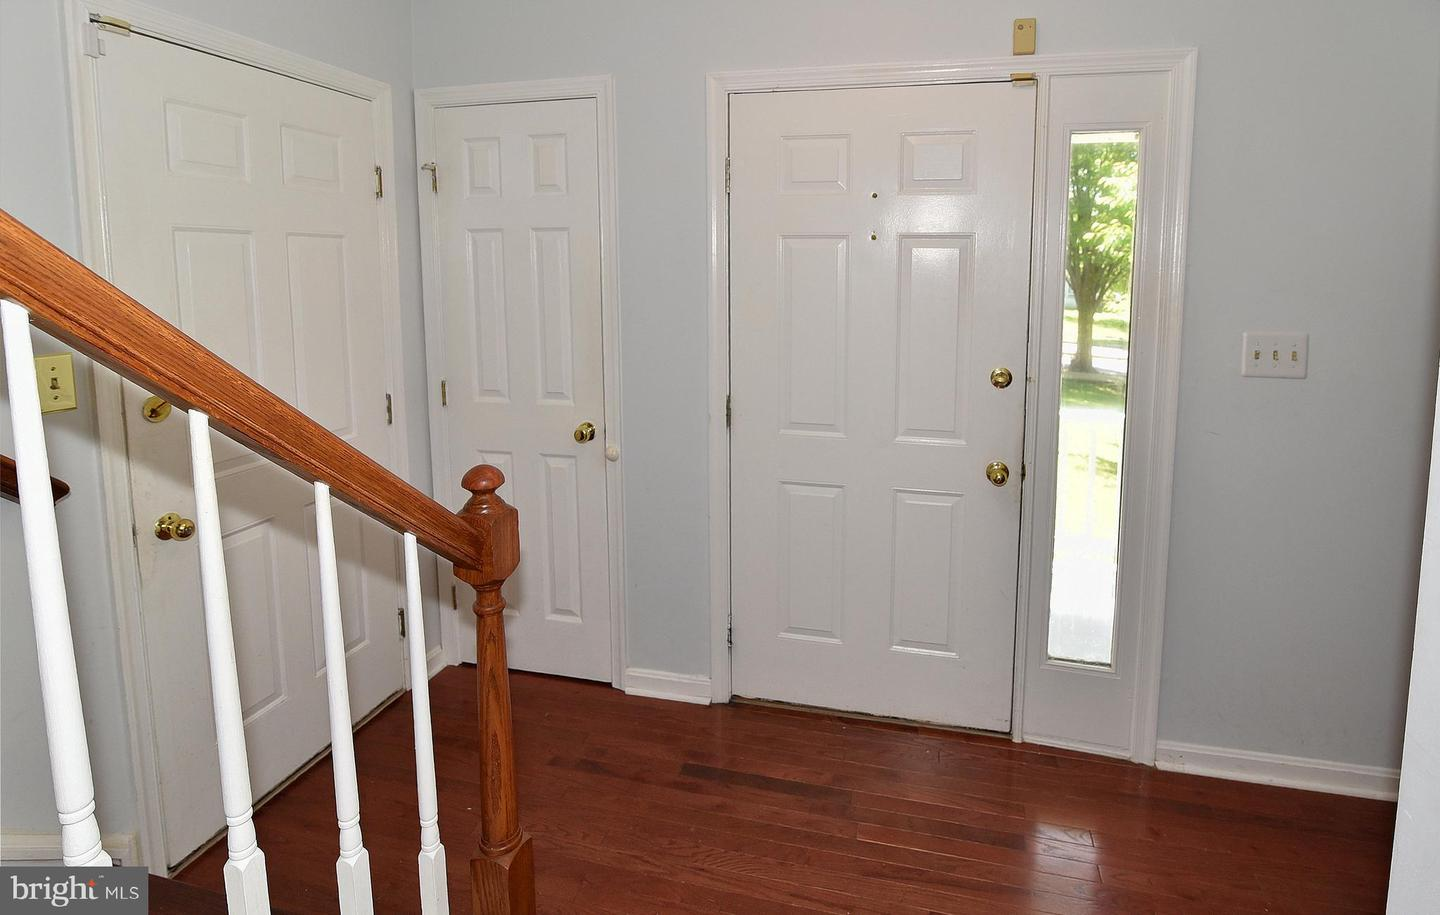 Additional photo for property listing at 1103 Charing Cross Dr Crofton, Maryland 21114 United States